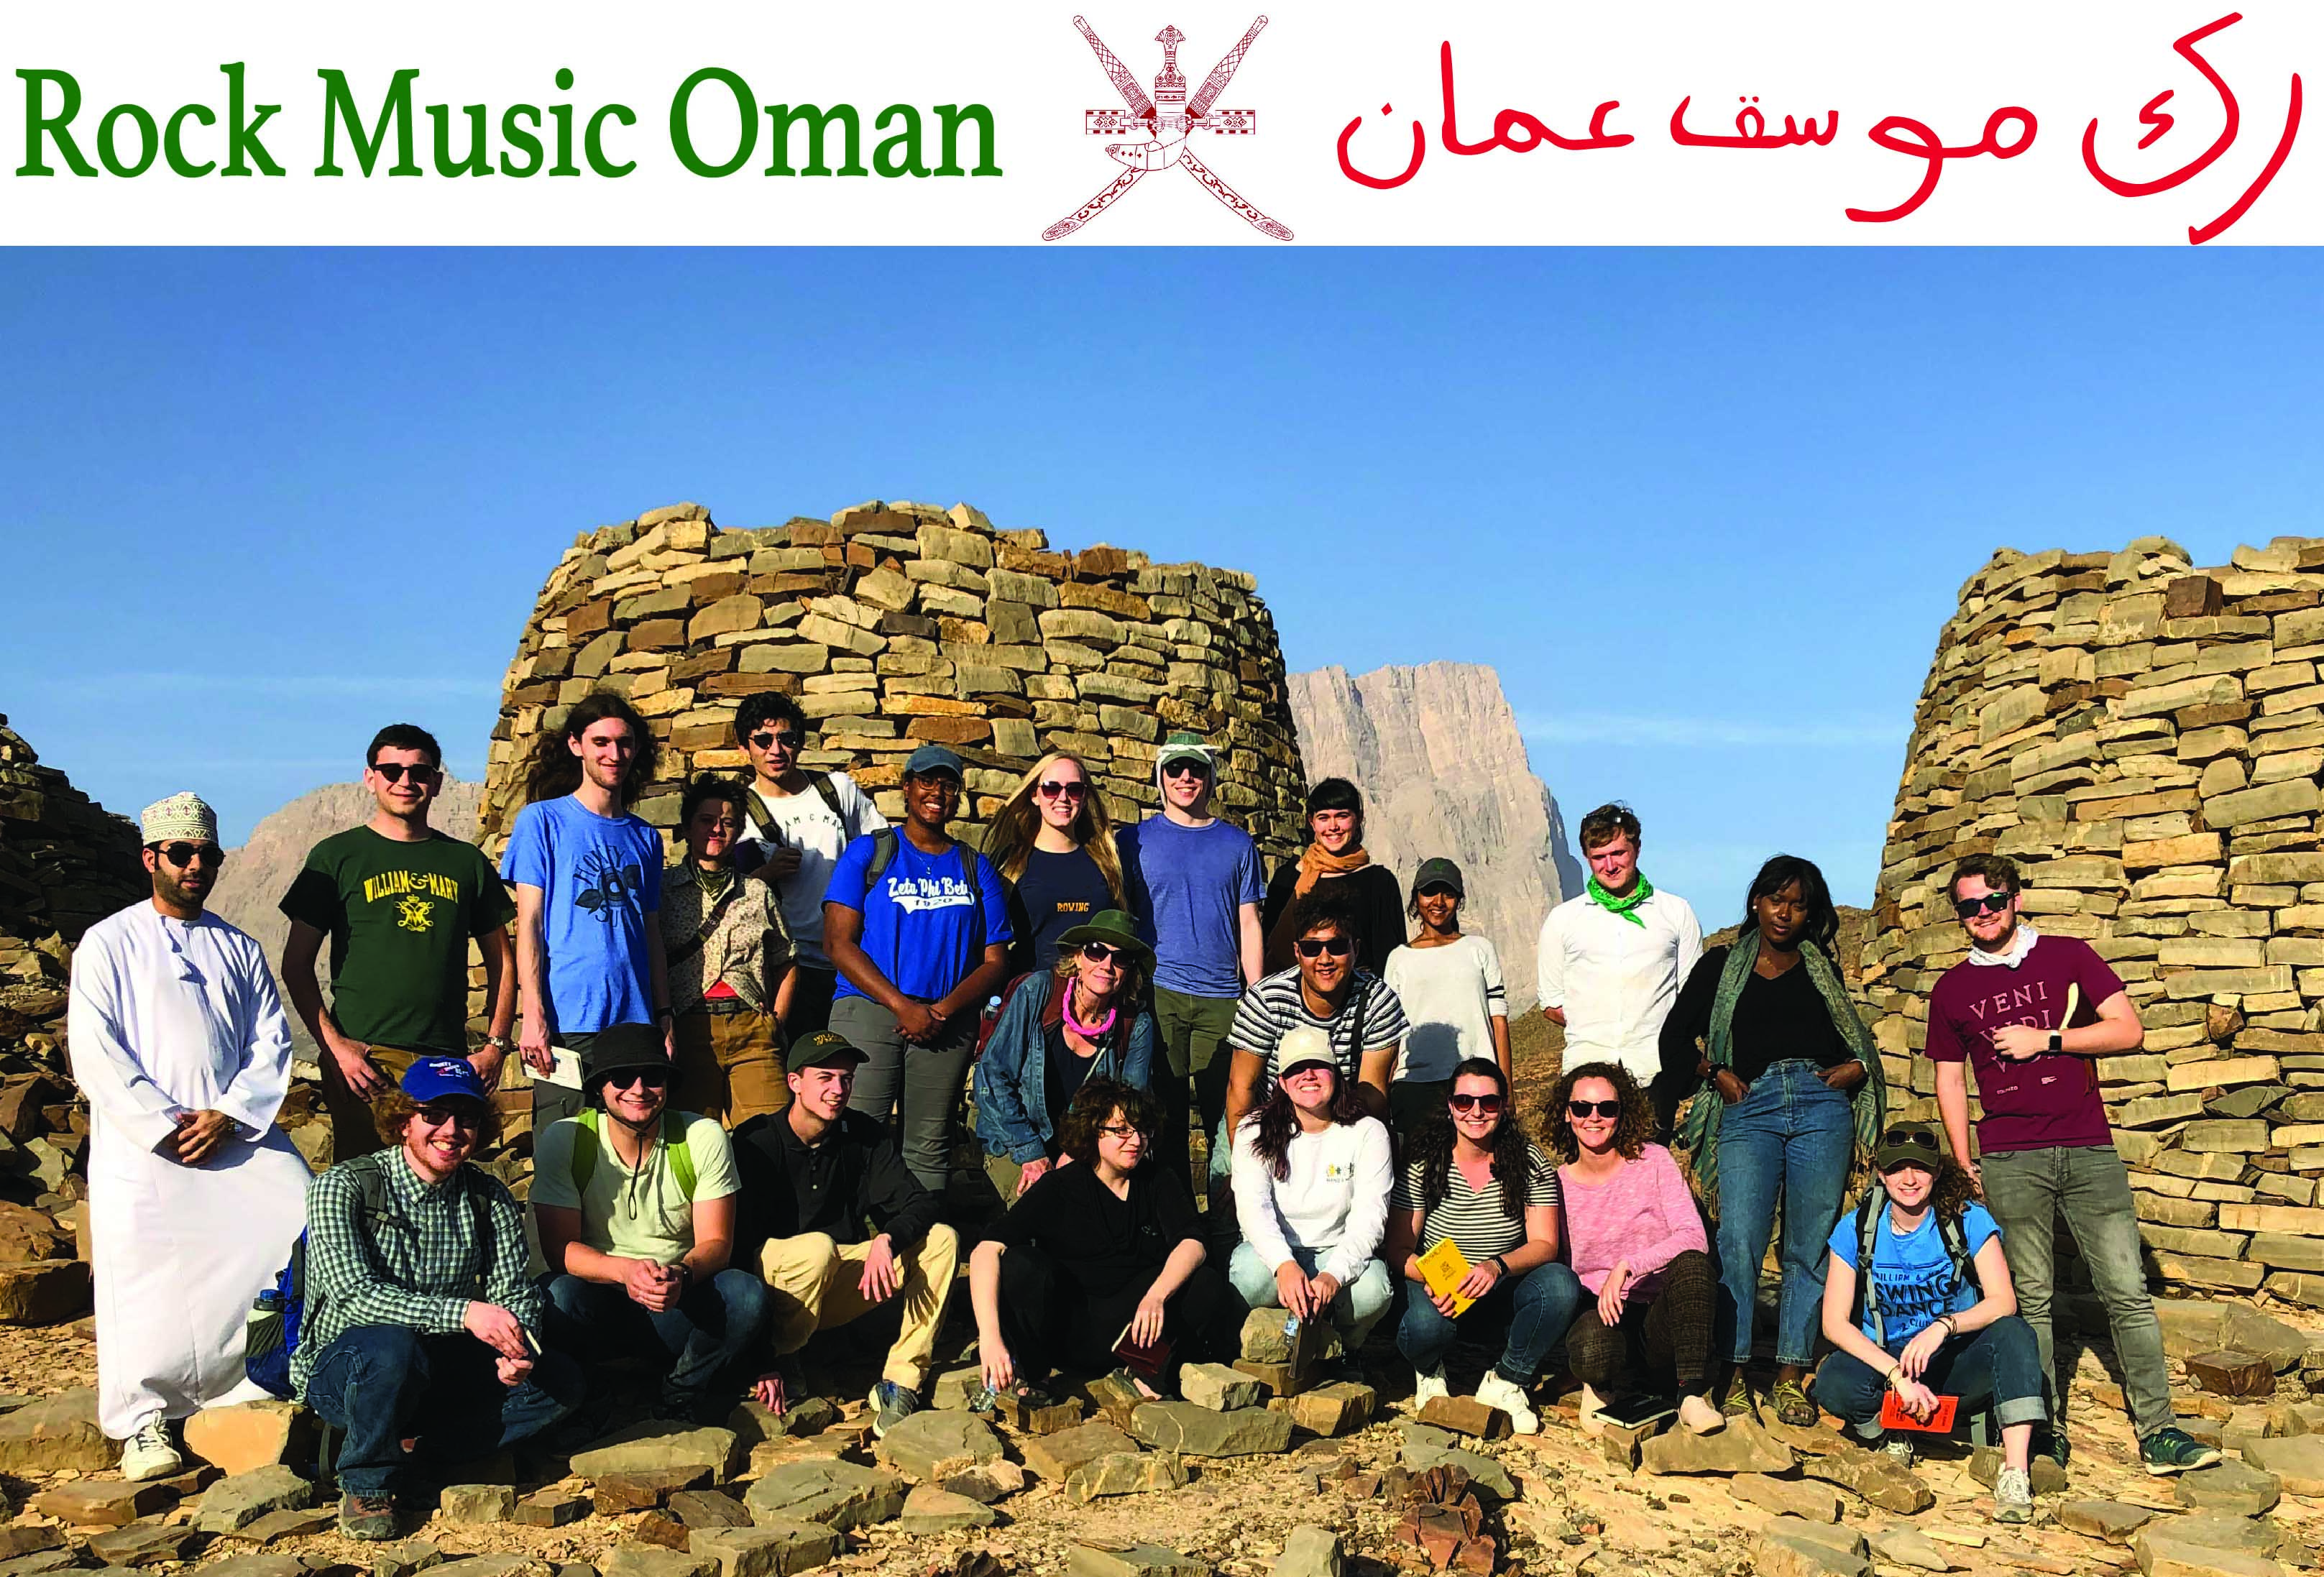 Rock Music Oman 2019: A Symposium and Celebration - The William